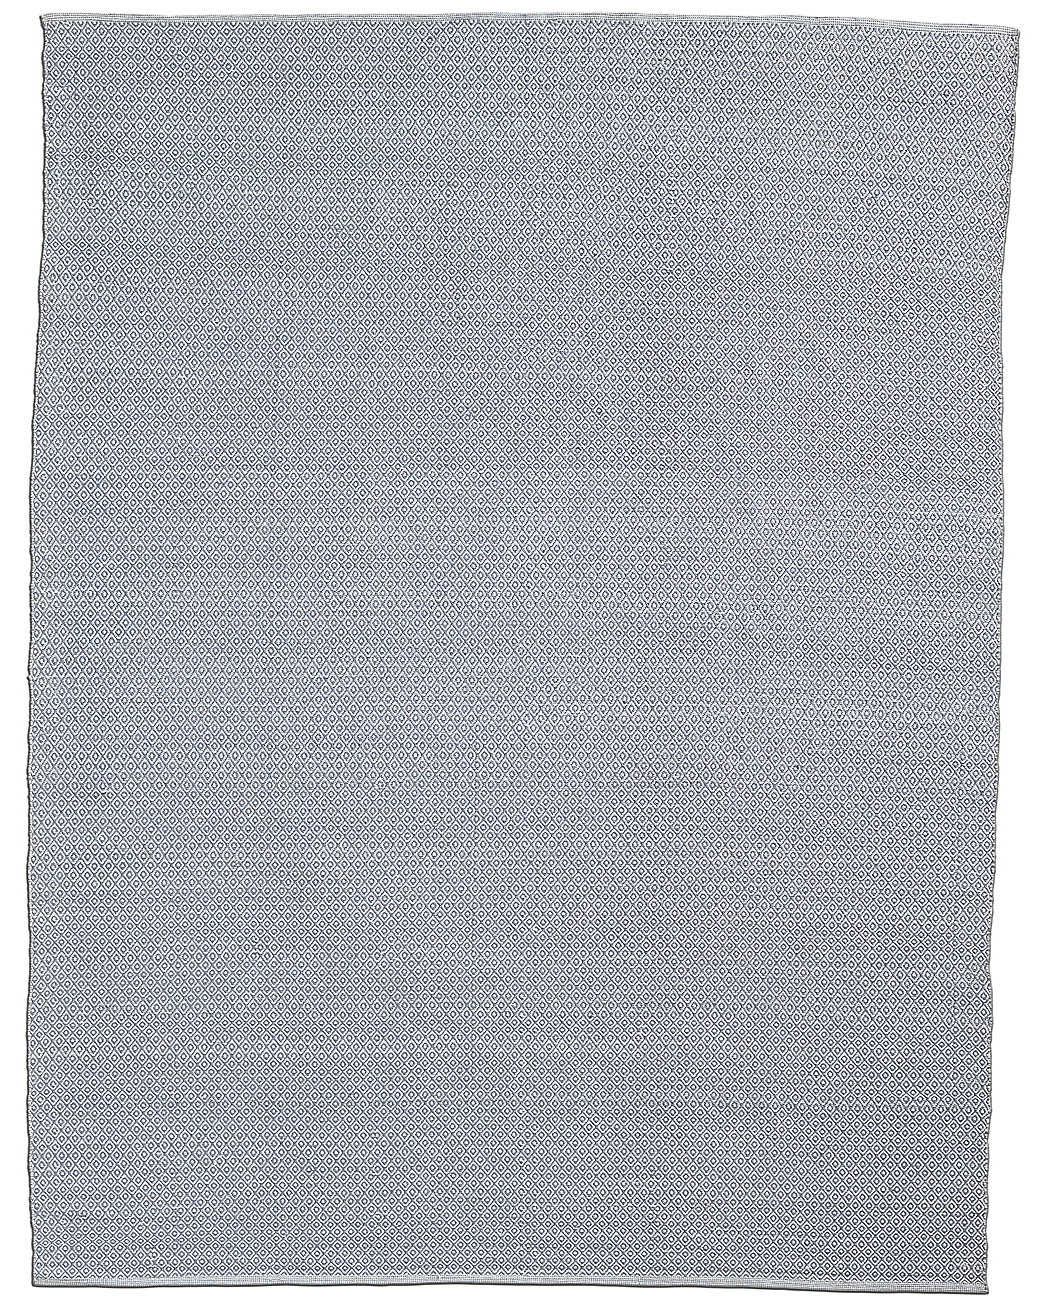 All-Weather Recycled Mini Diamond Outdoor Rug - Grey/White